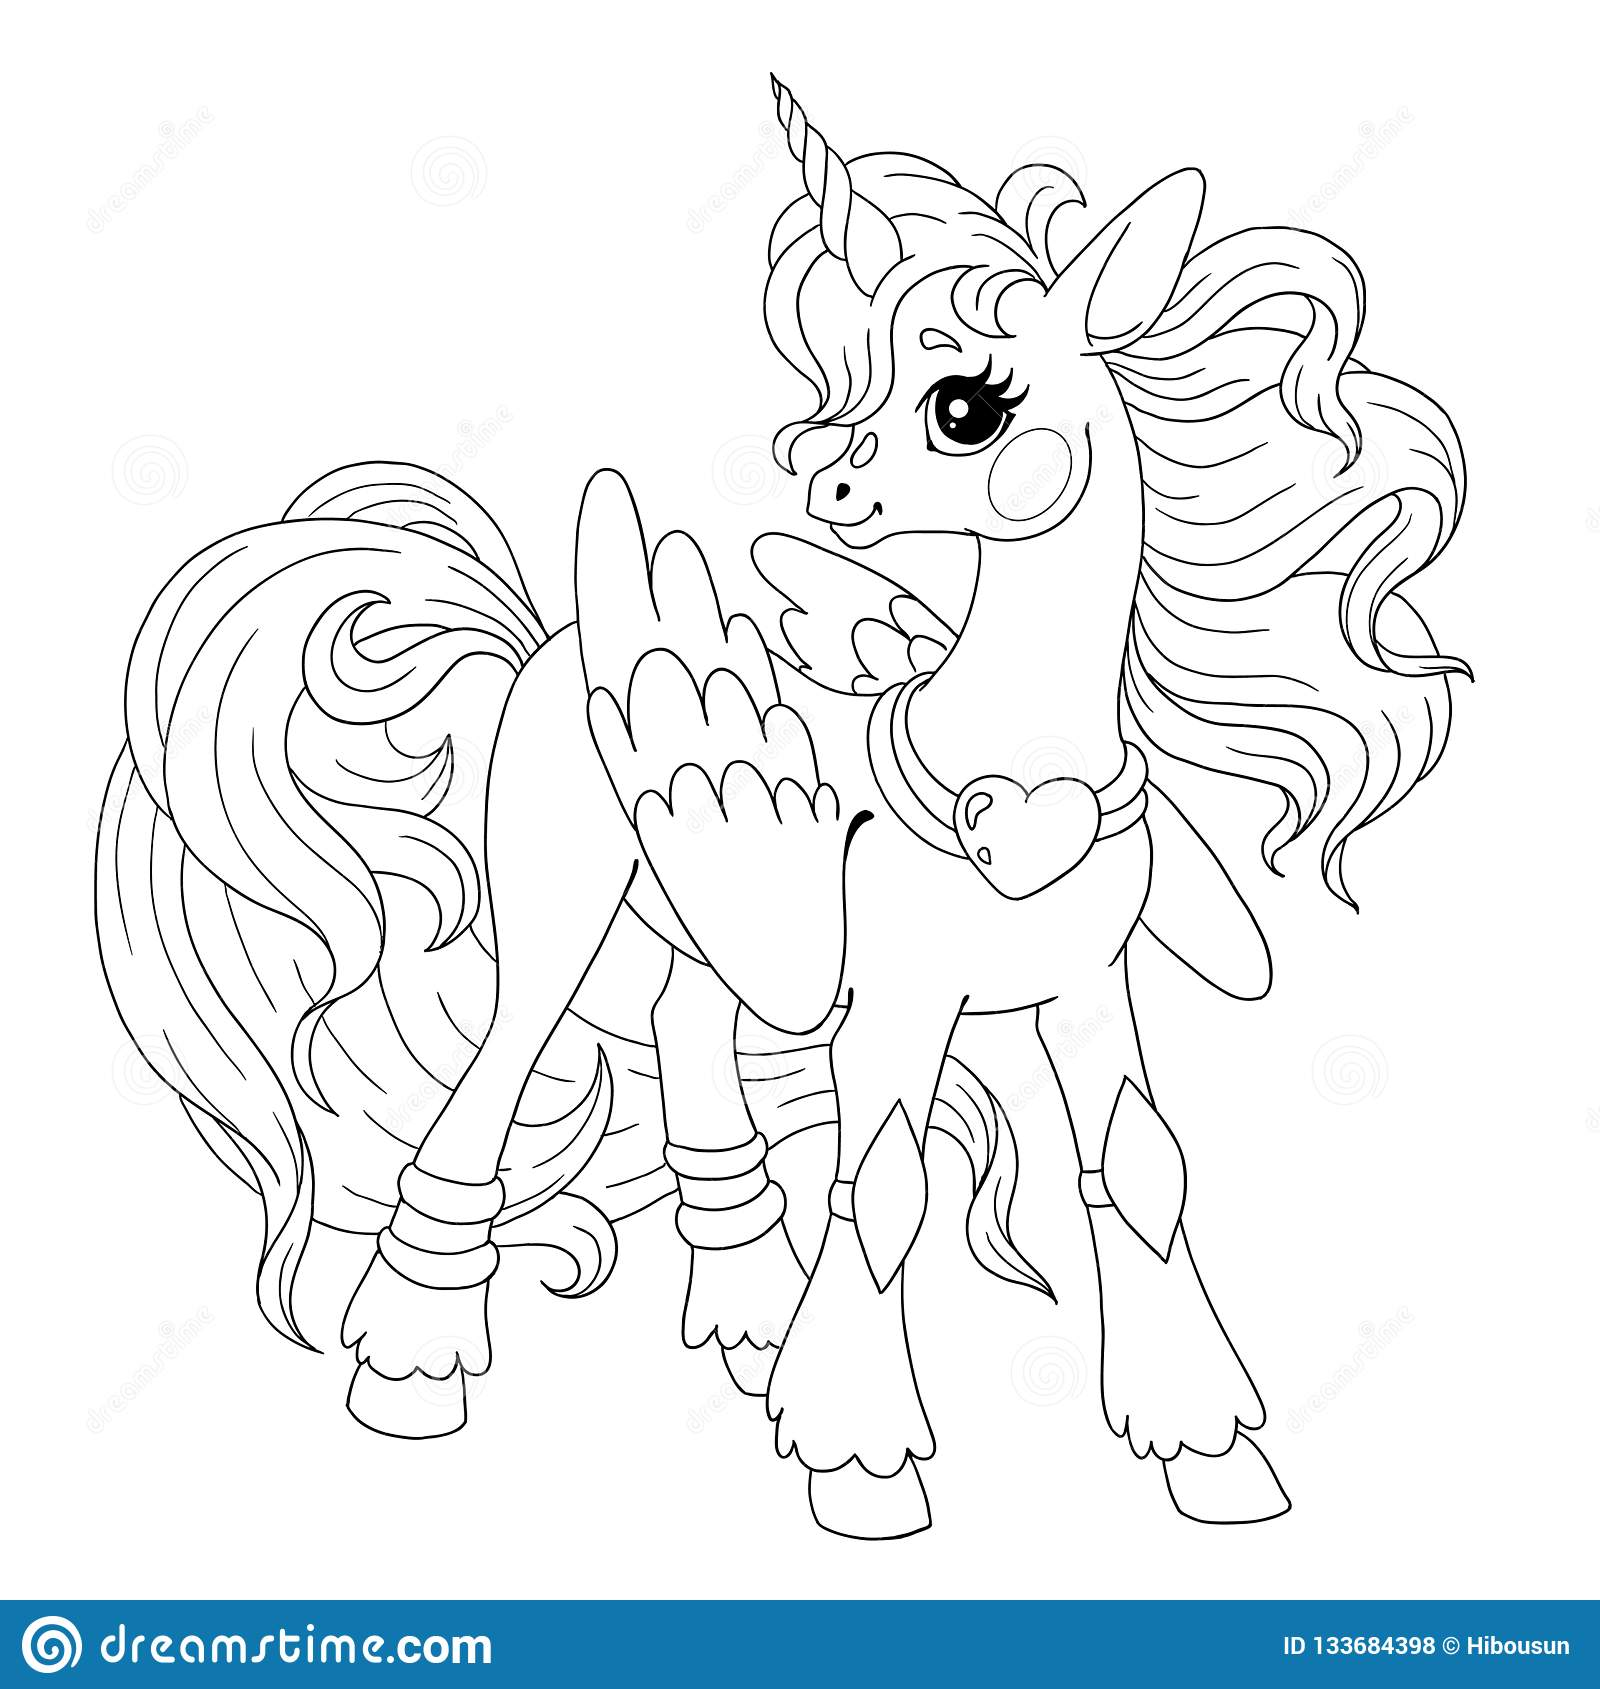 - Cartoon Character For Coloring Book. Pony Unicorn Doodle. Element